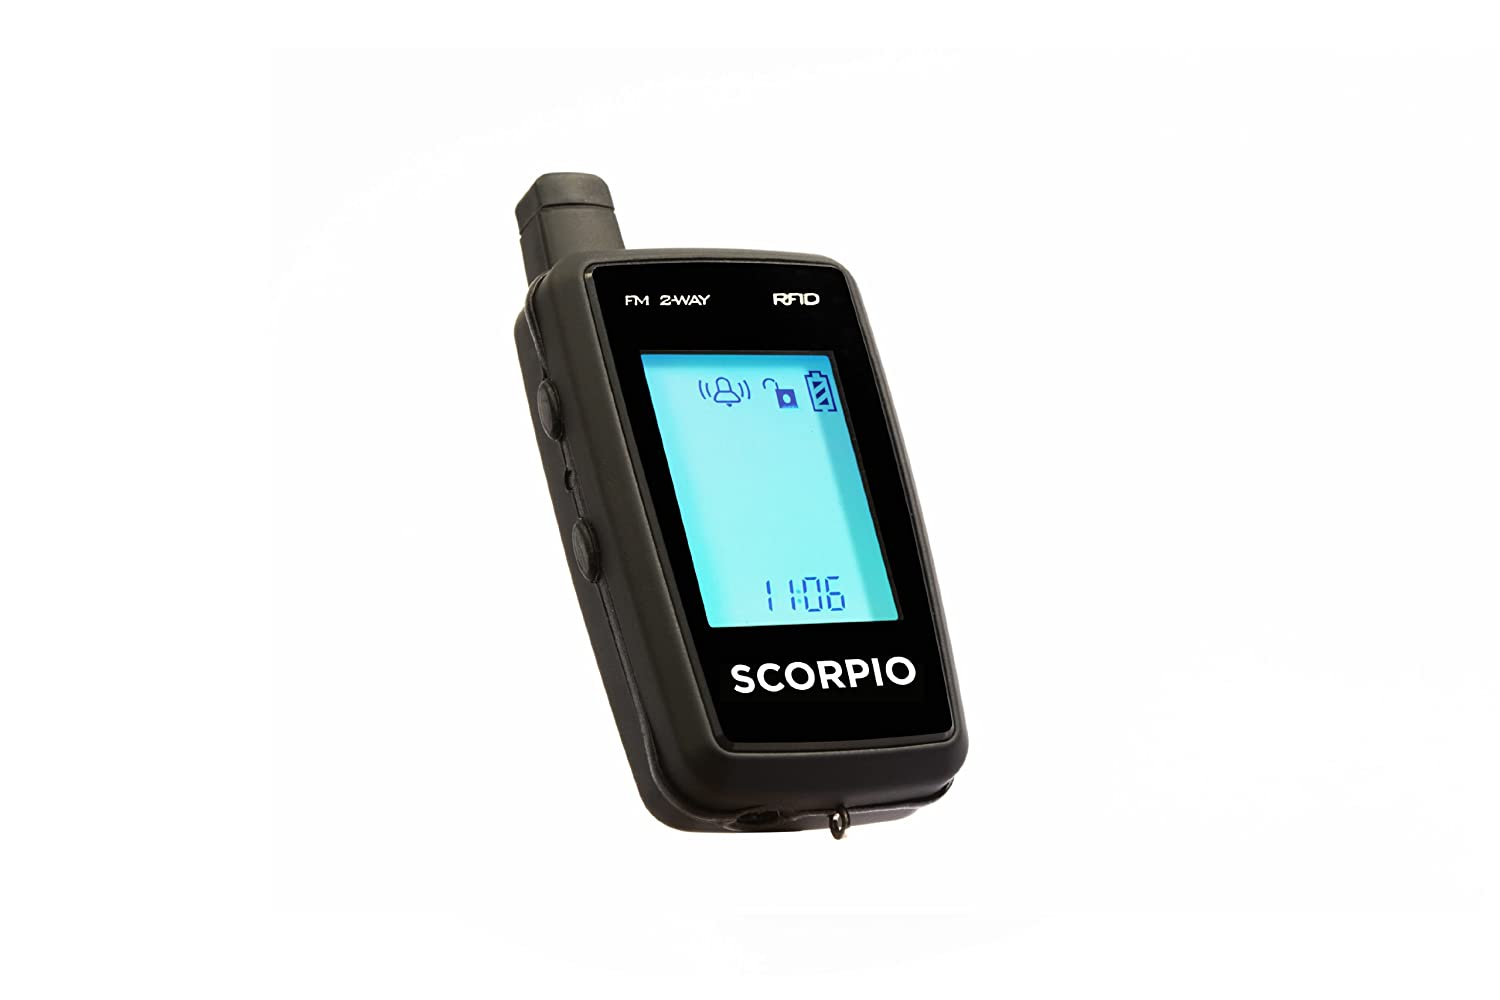 71GRtO7JF5L._SL1500_ amazon com scorpio sr i900 rfid security system black automotive  at n-0.co